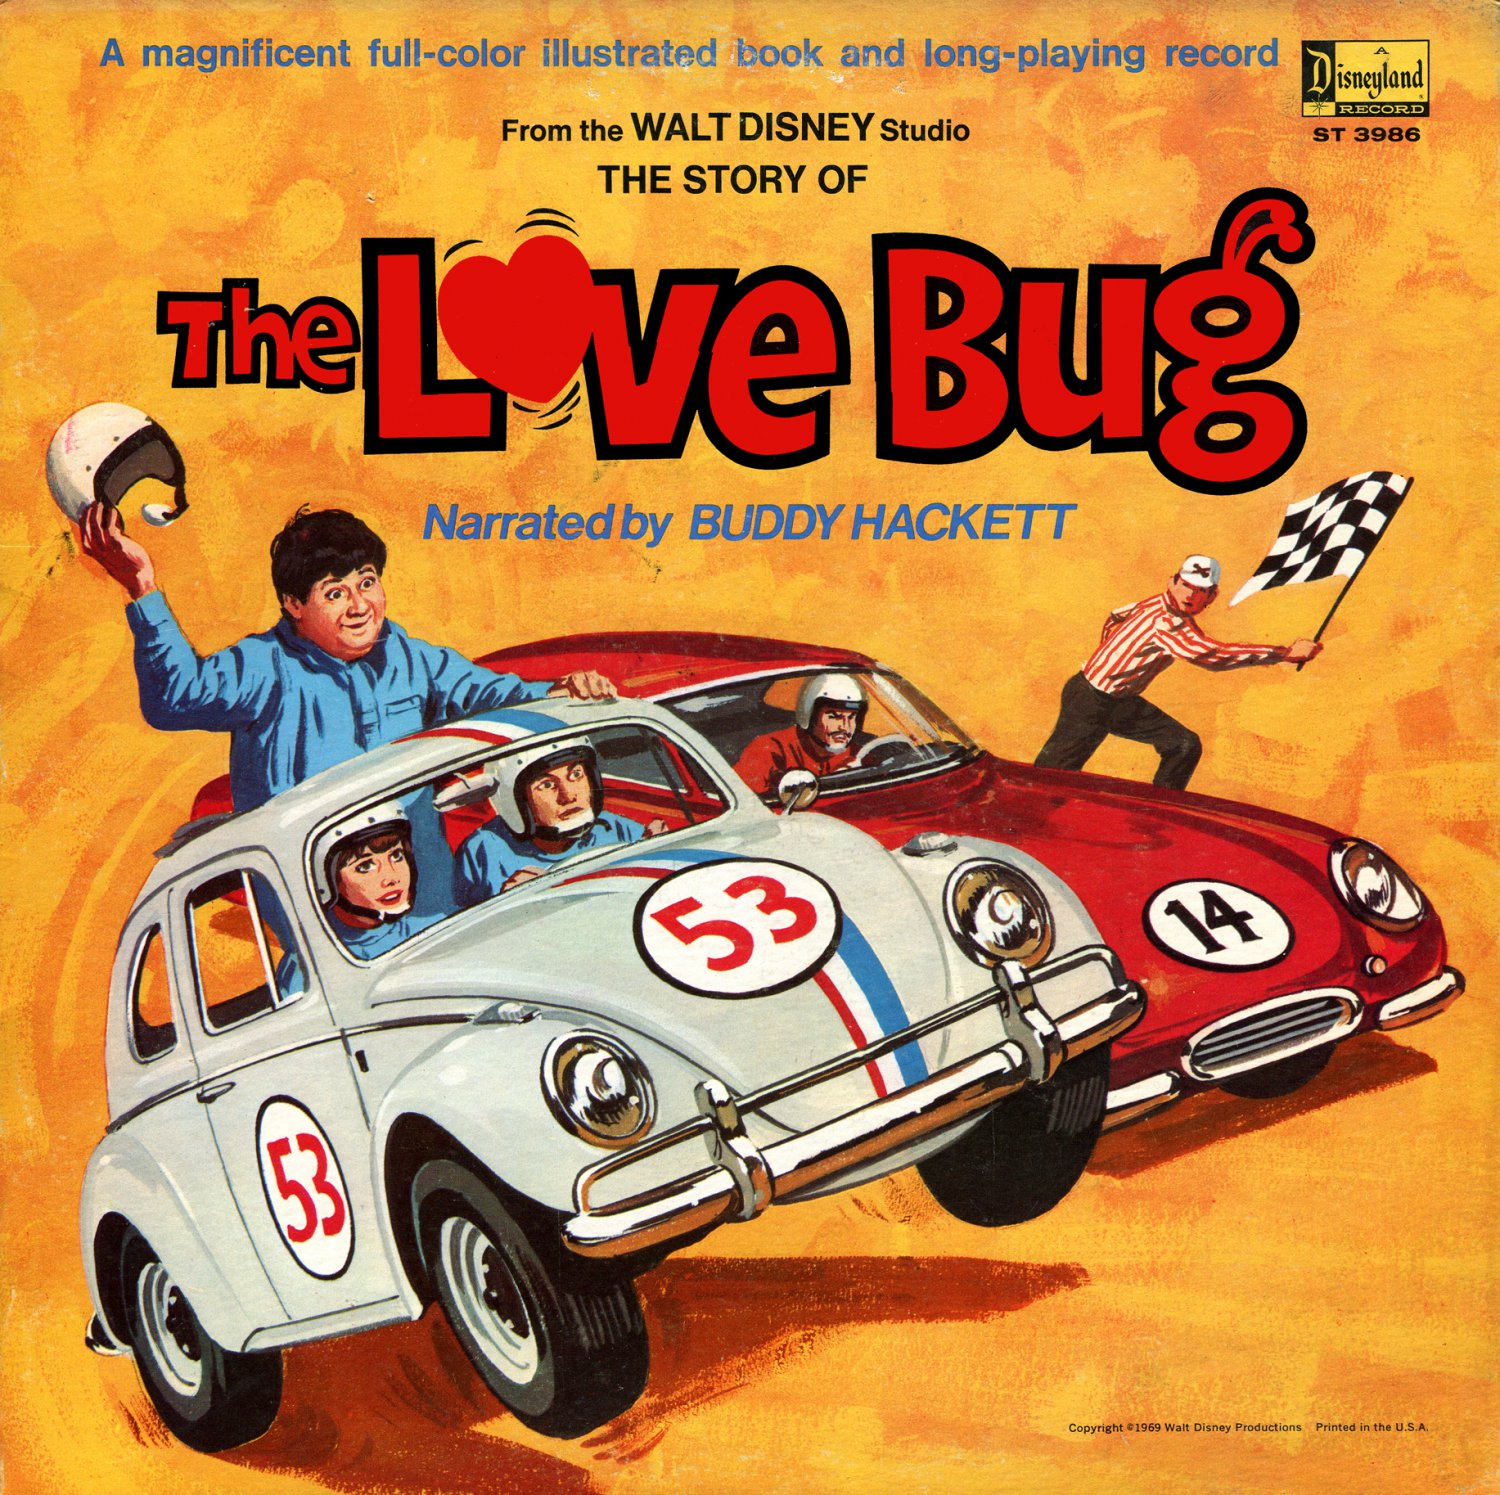 The Love Bug (1969) - Walt Disney Story Soundtrack LP/CD